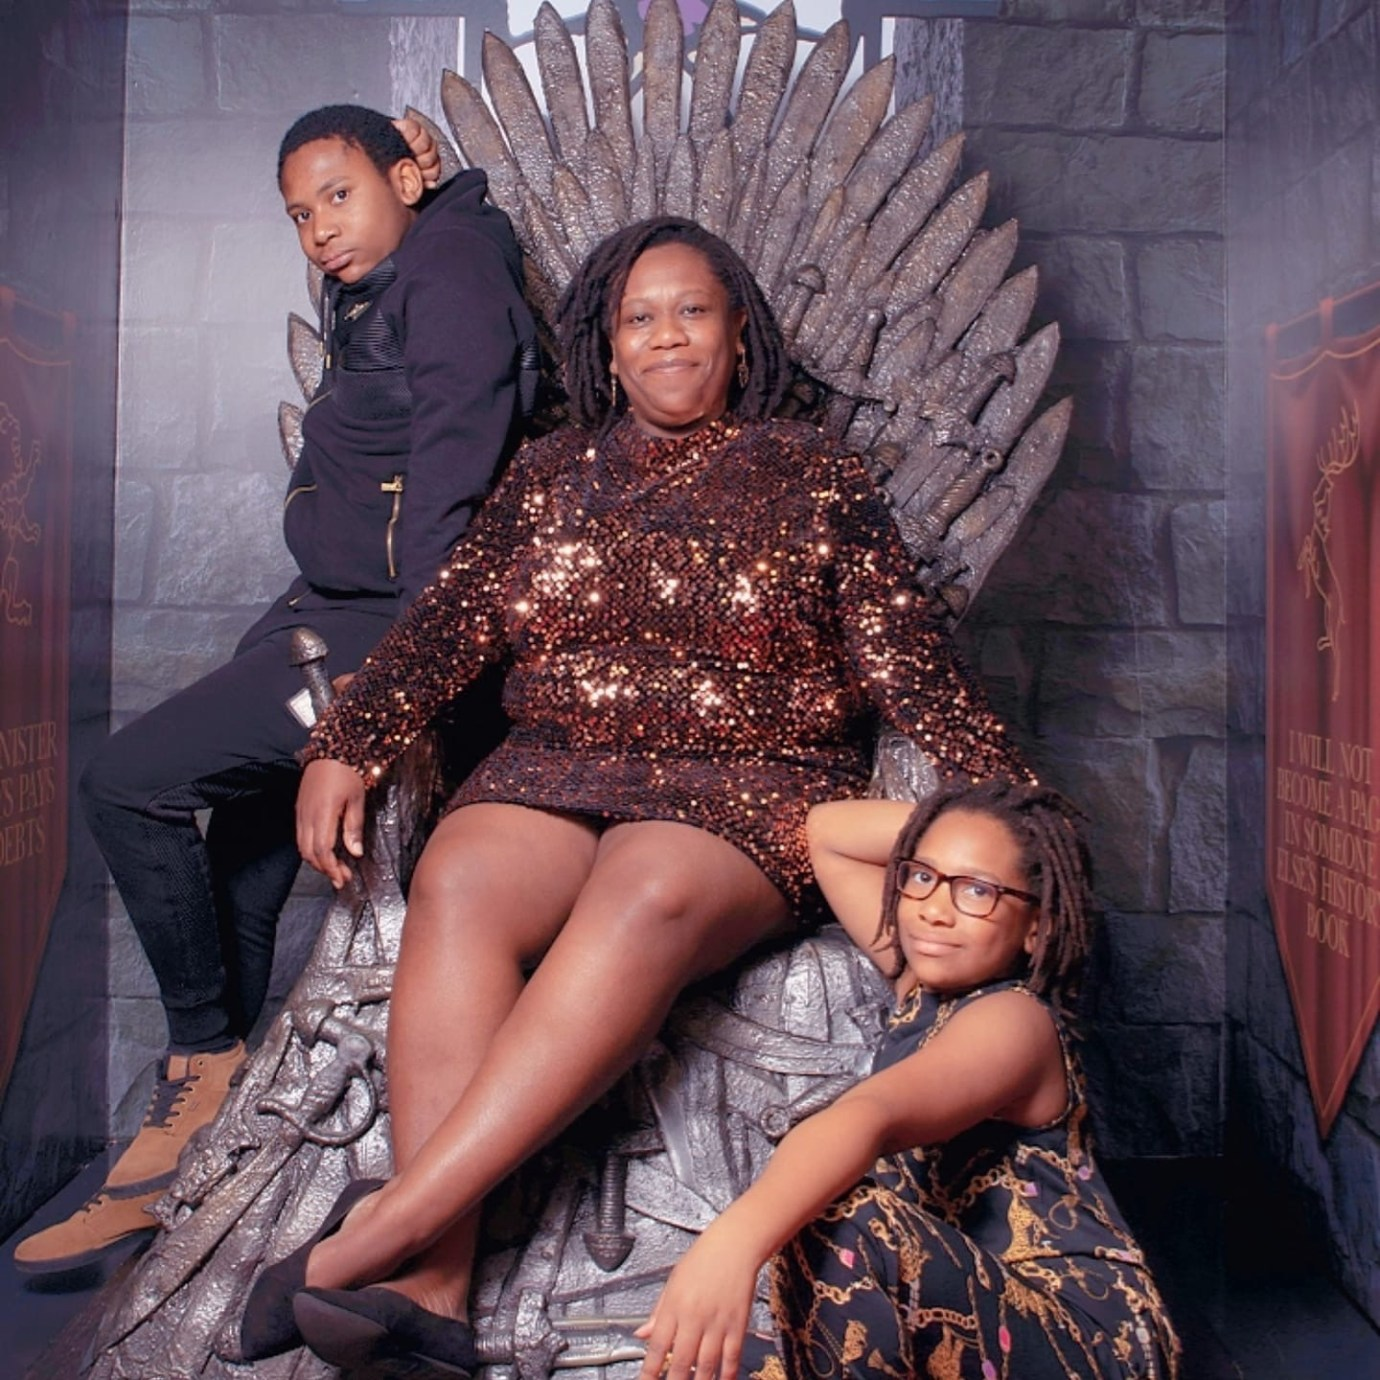 Beautiful black woman sits on throne like chair with her two children around her.